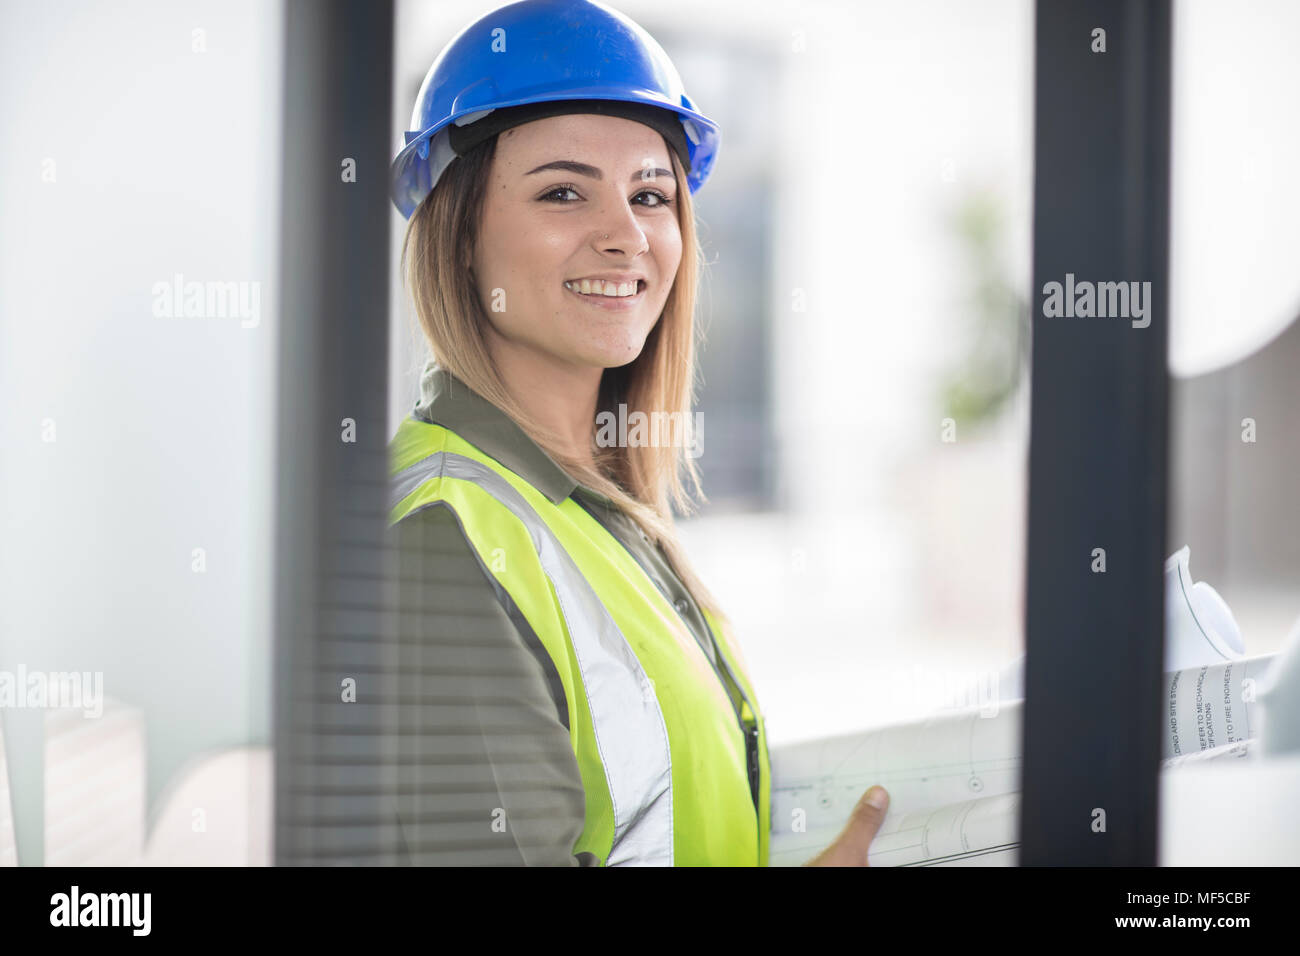 Portrait of smiling woman wearing hard hat and reflective jacket - Stock Image